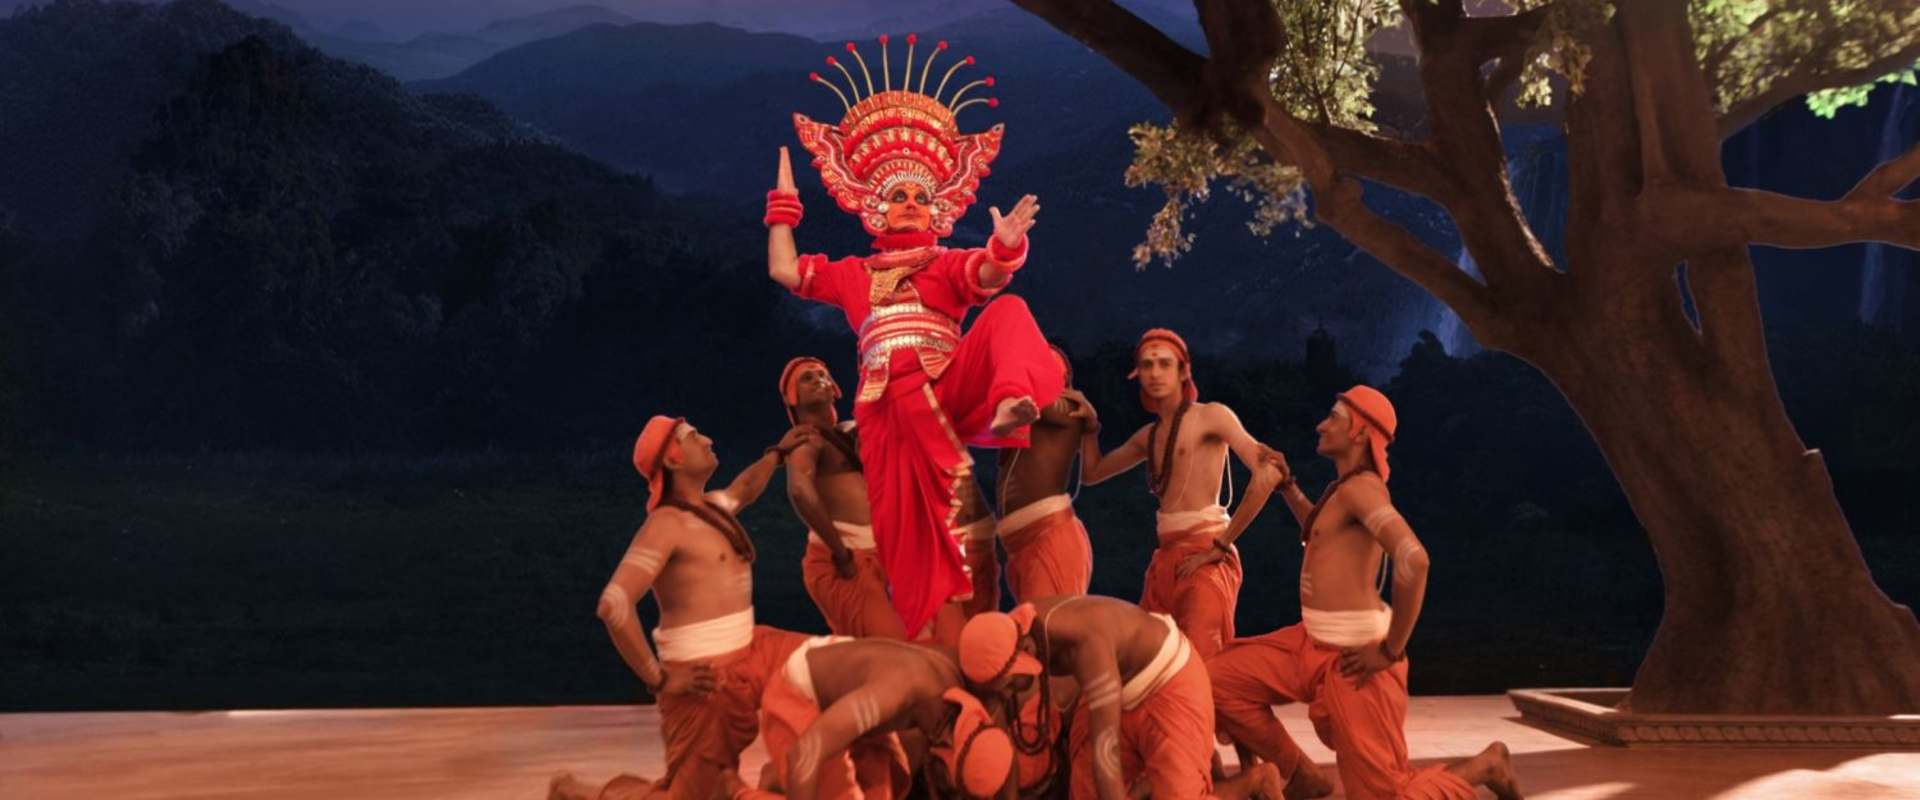 Uttama Villain background 2